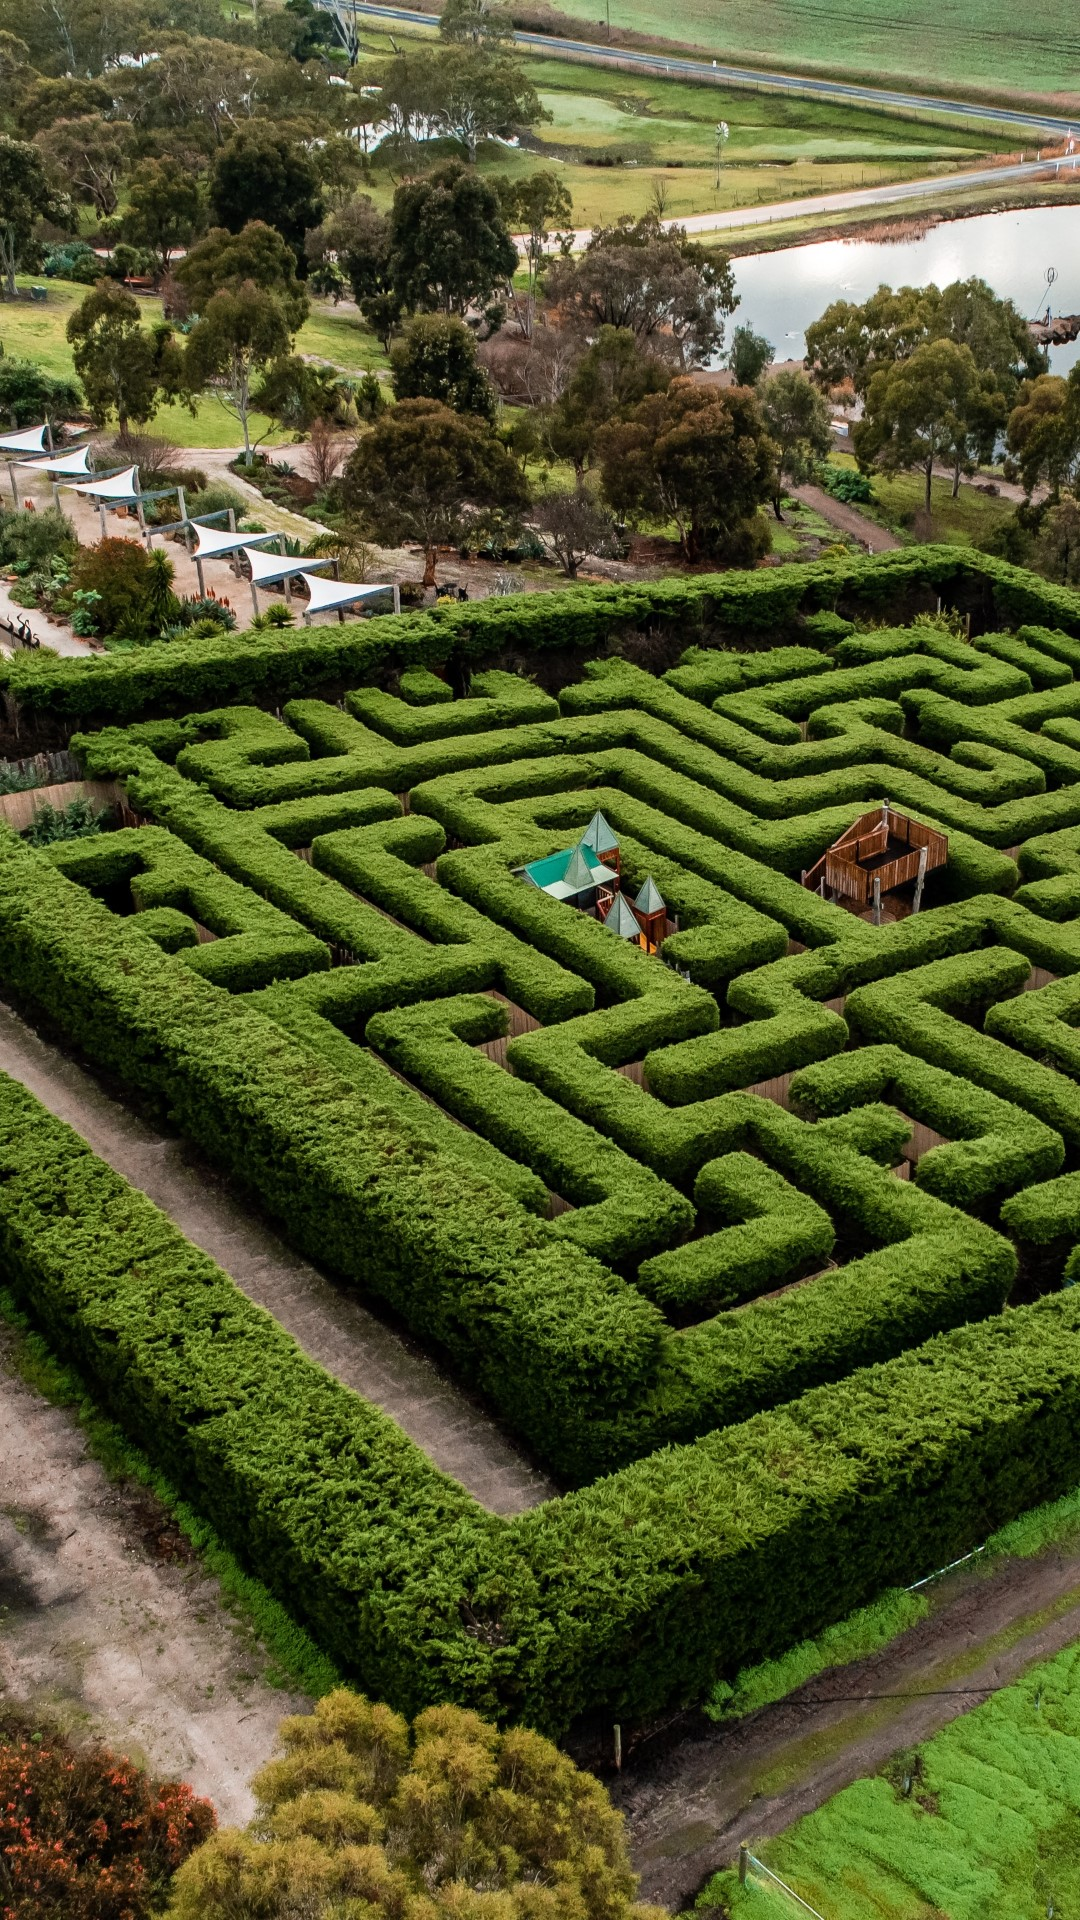 Aerial photo of the Maze and Gardens taken from another perspective.